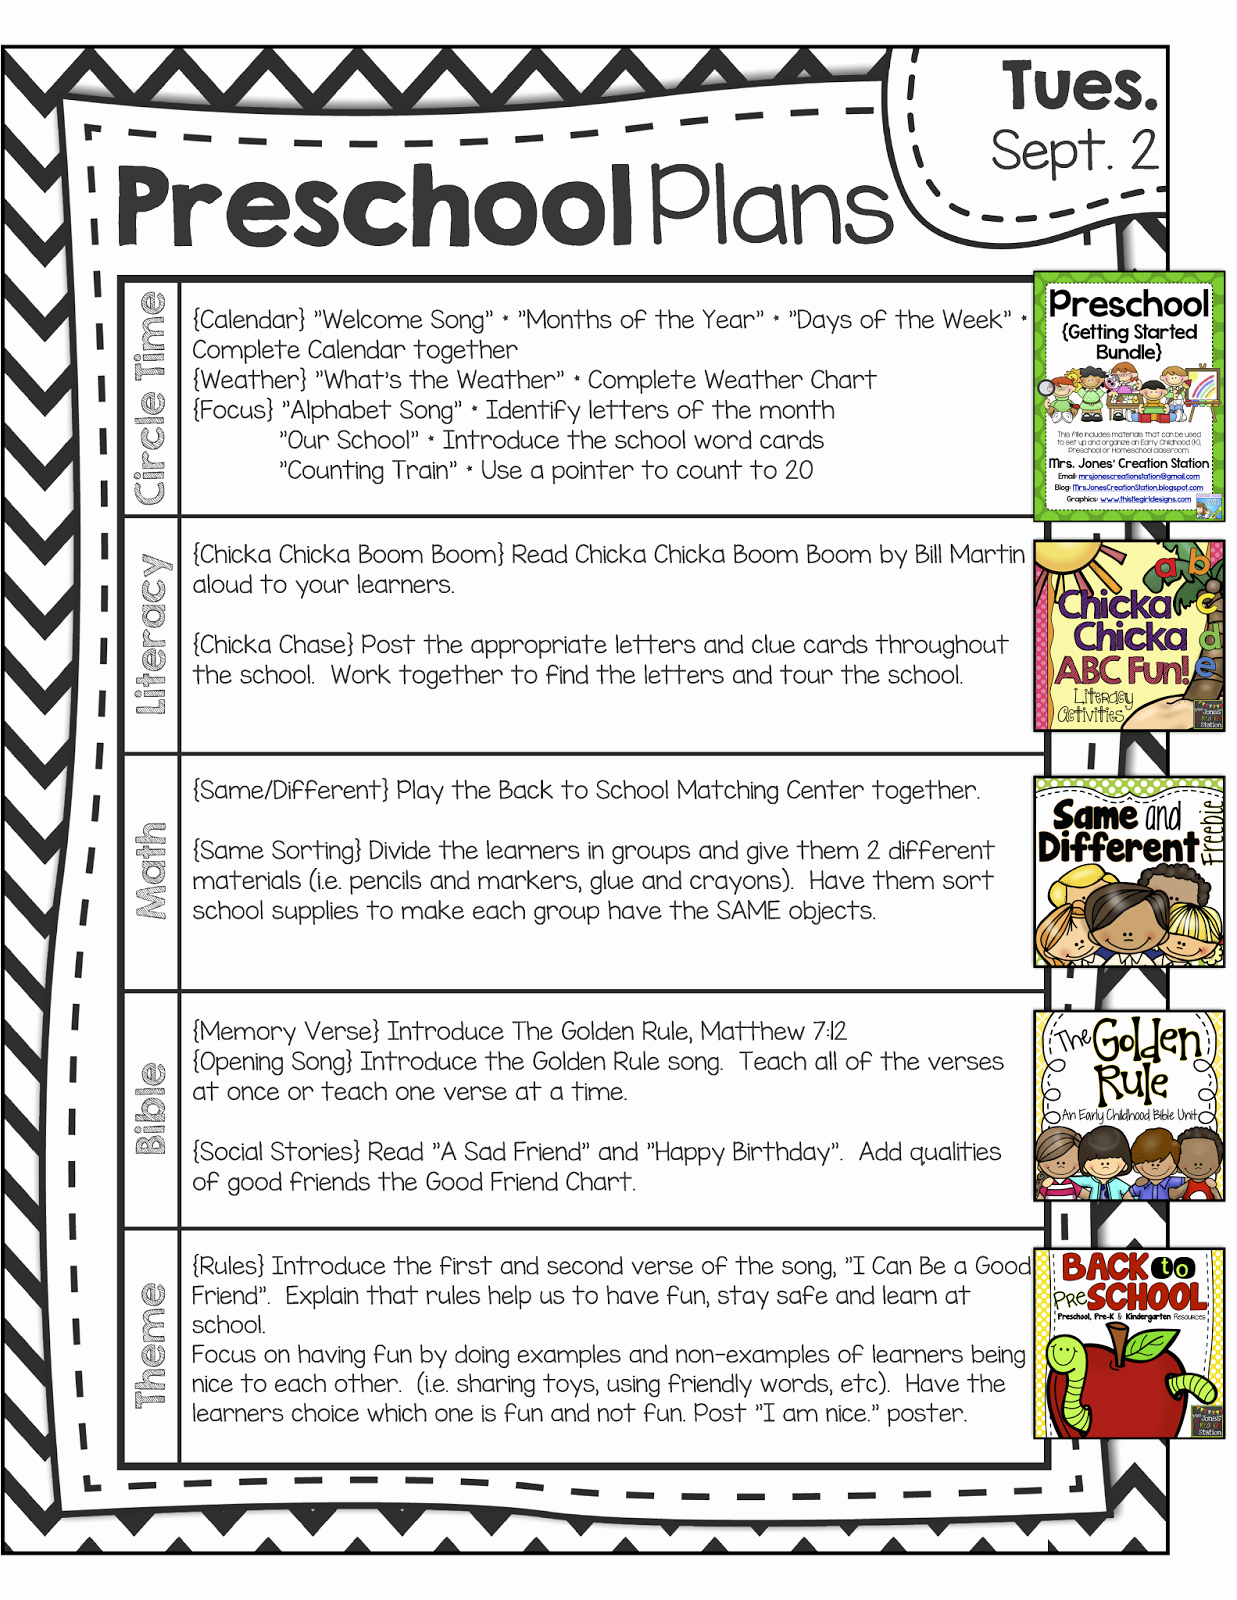 Prek Lesson Plan Template Best Of Windows 10 Product Activation Keys All Versions